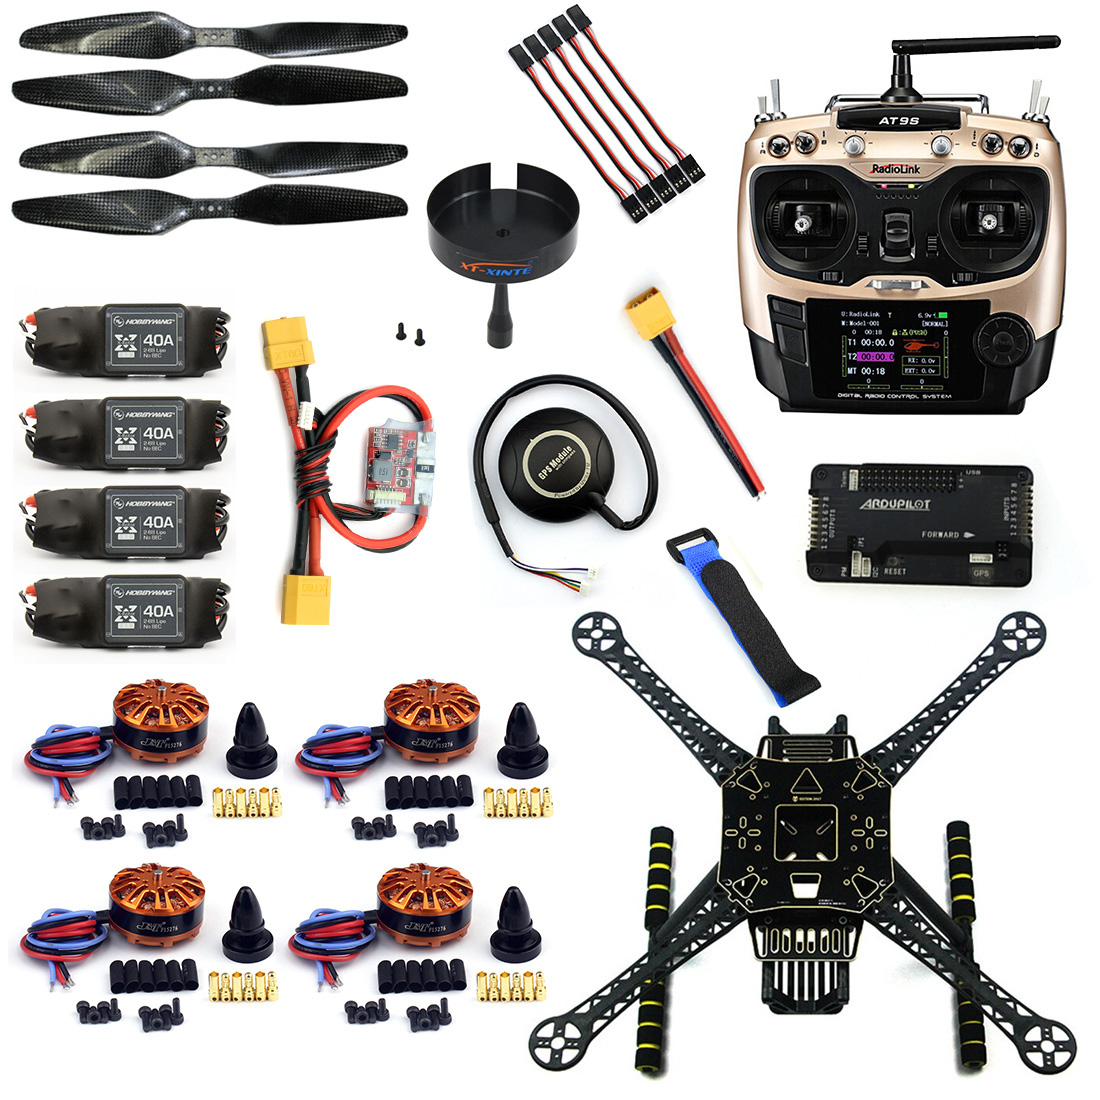 F19457-G DIY 4 Axle RC FPV Drone S600 Frame Kit with APM 2.8 Flight Control Radiolink AT9S Transmitter 700KV Motor 40A ESC GPS diy rc drone quadrocopter x4m380l frame kit apm 2 8 flight control gps brushless motor quadcopter f14893 k